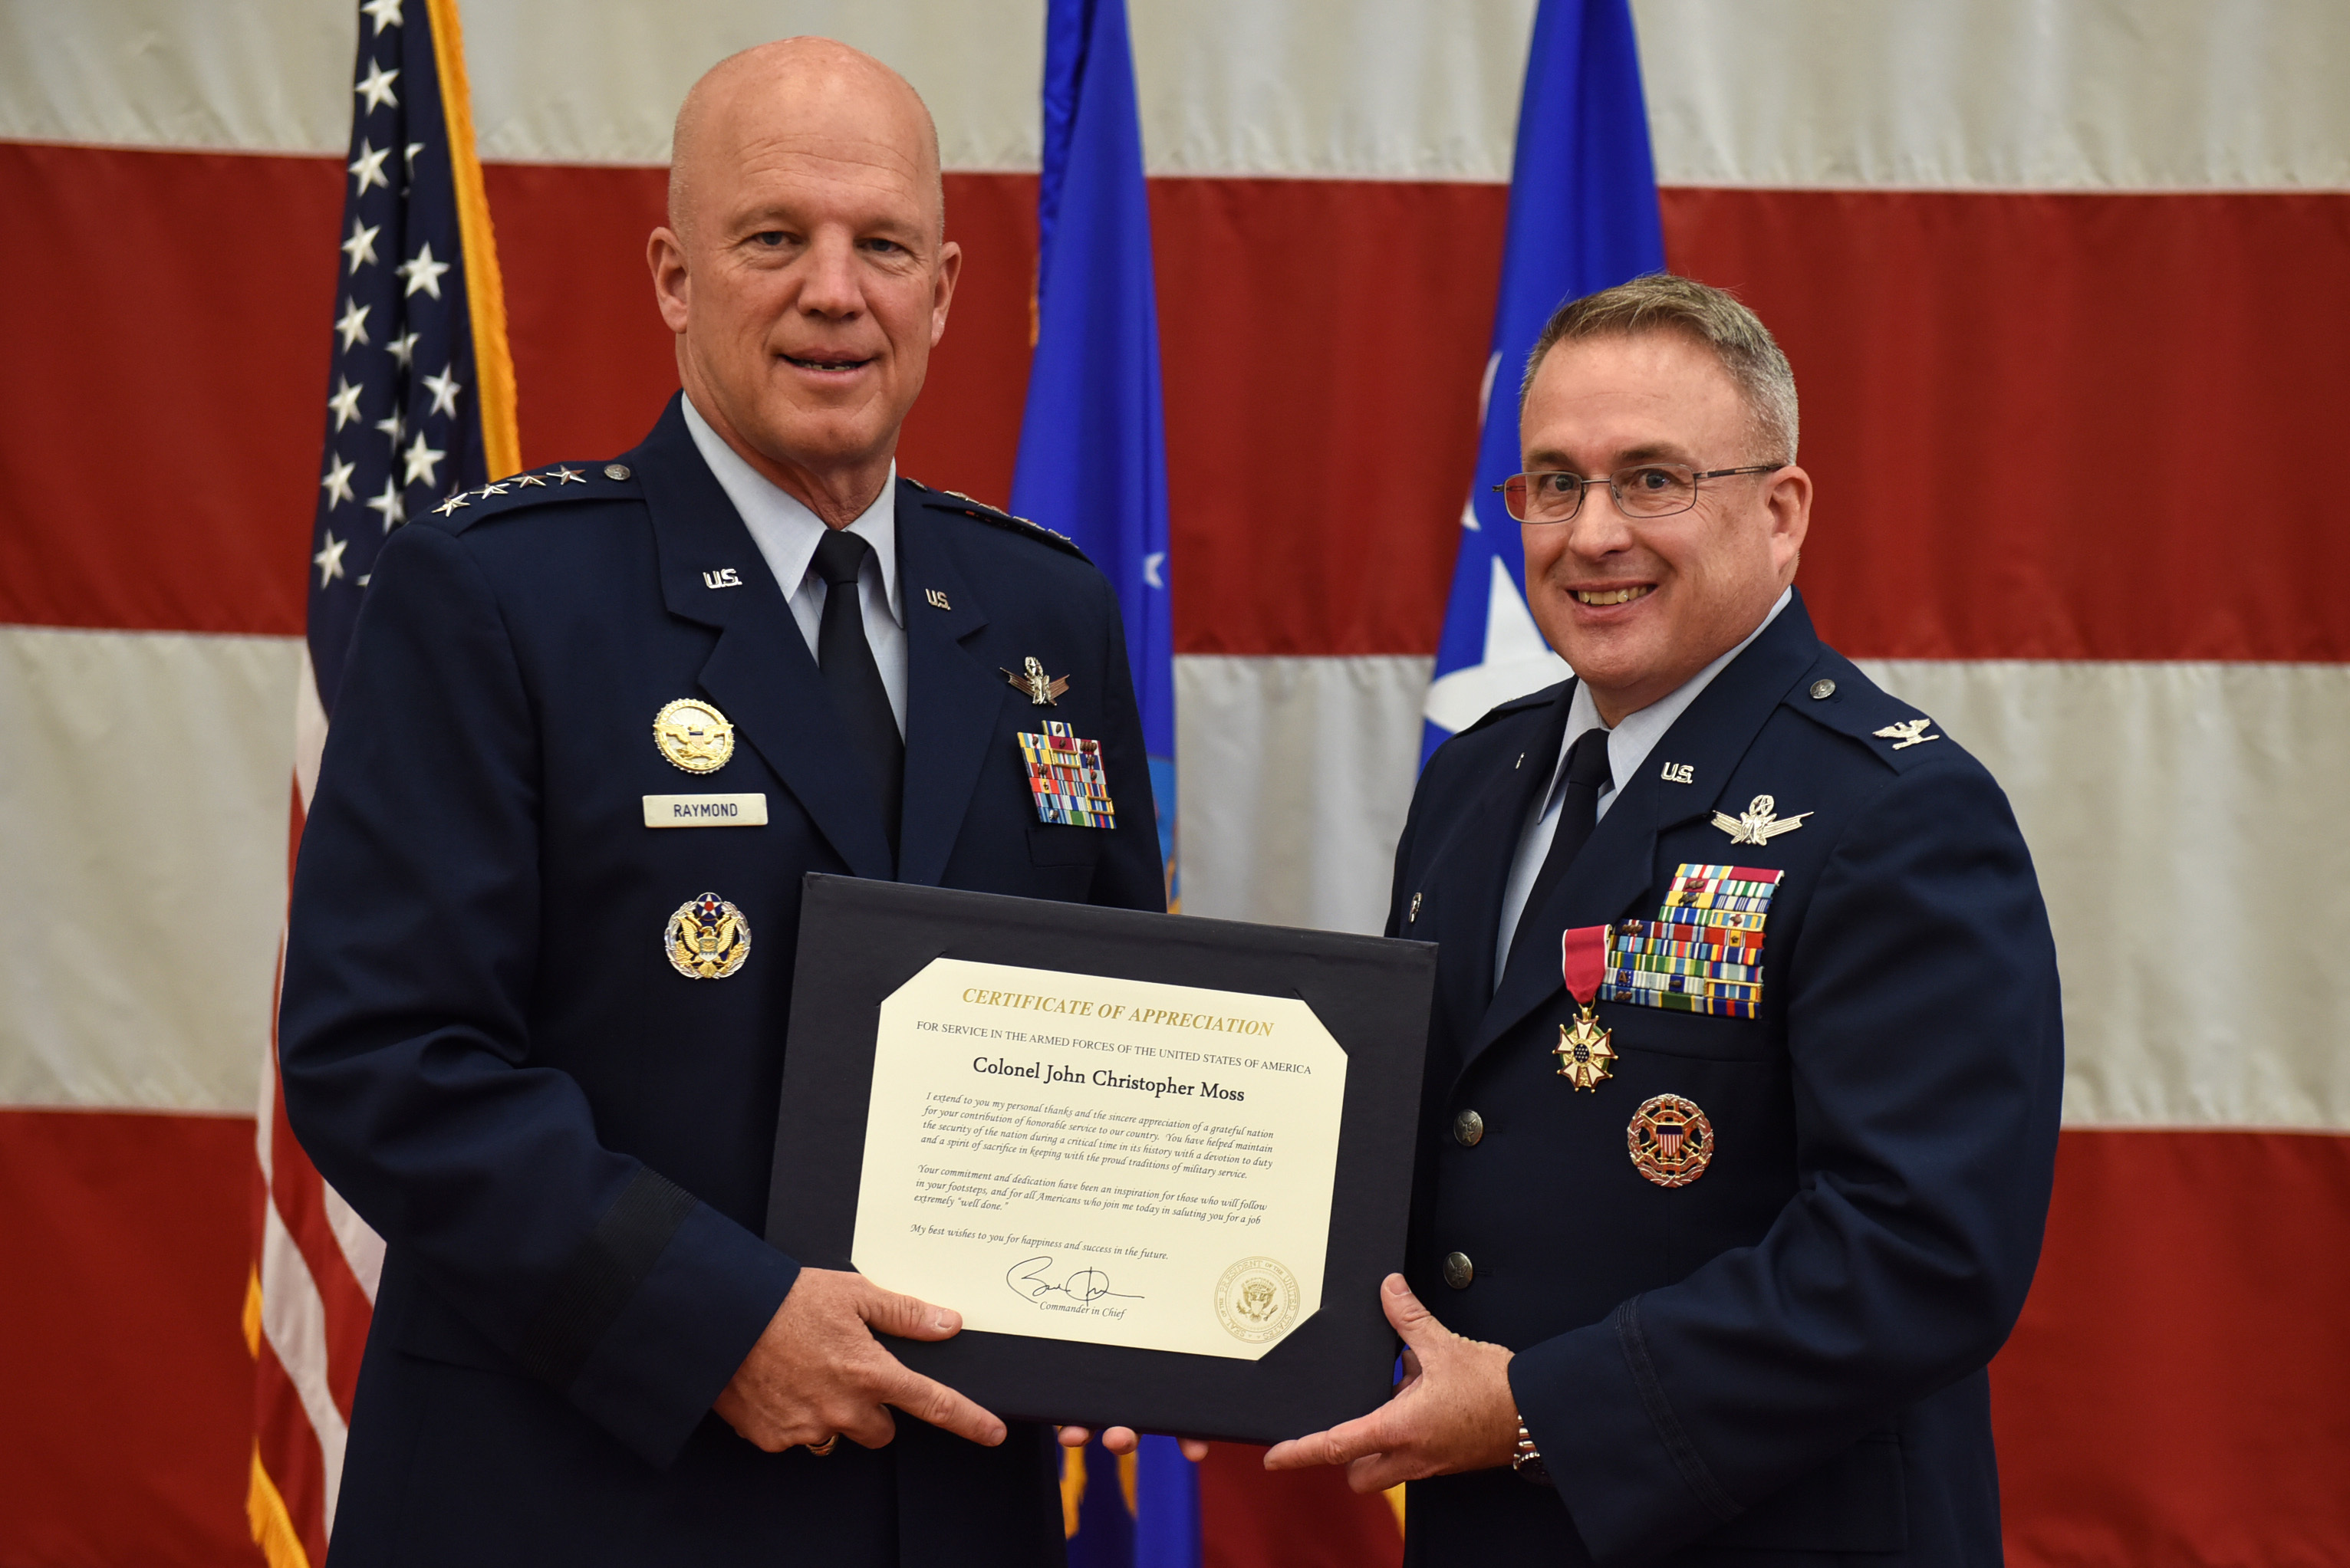 30th SW commander bids farewell to Vandenberg, Air Force